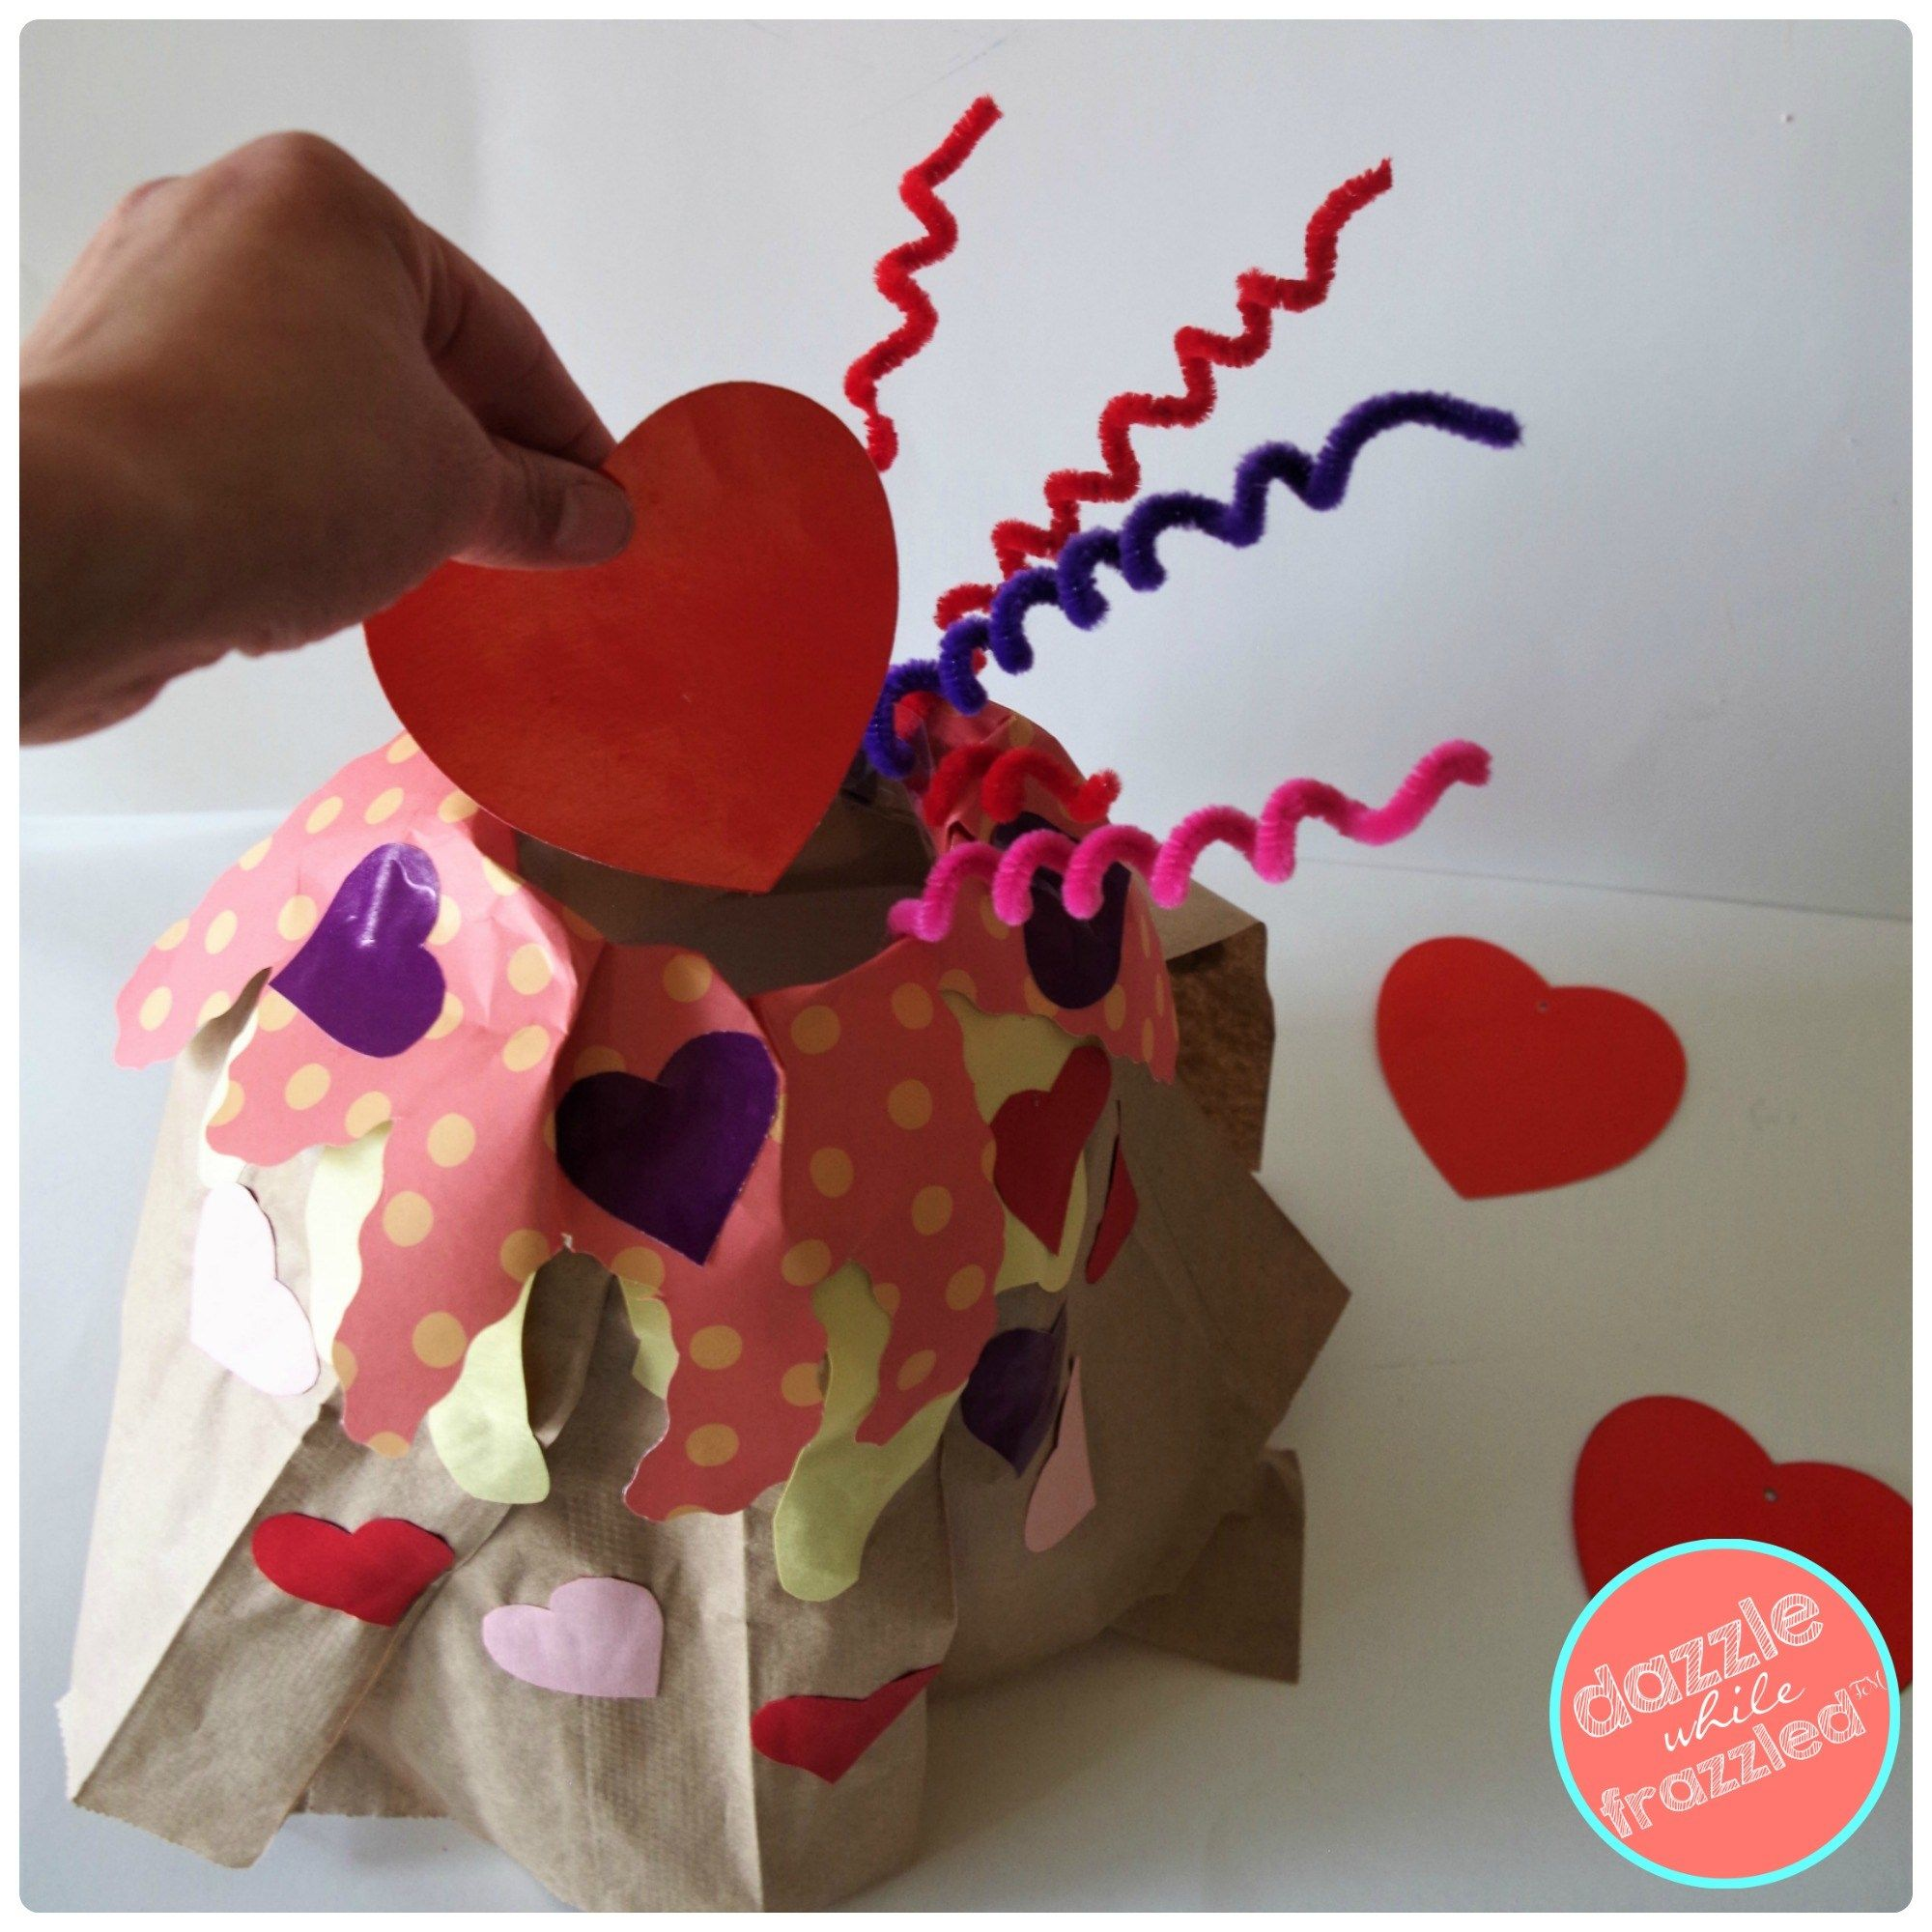 How To Make Love Volcano Valentine S Day Card Box With Images